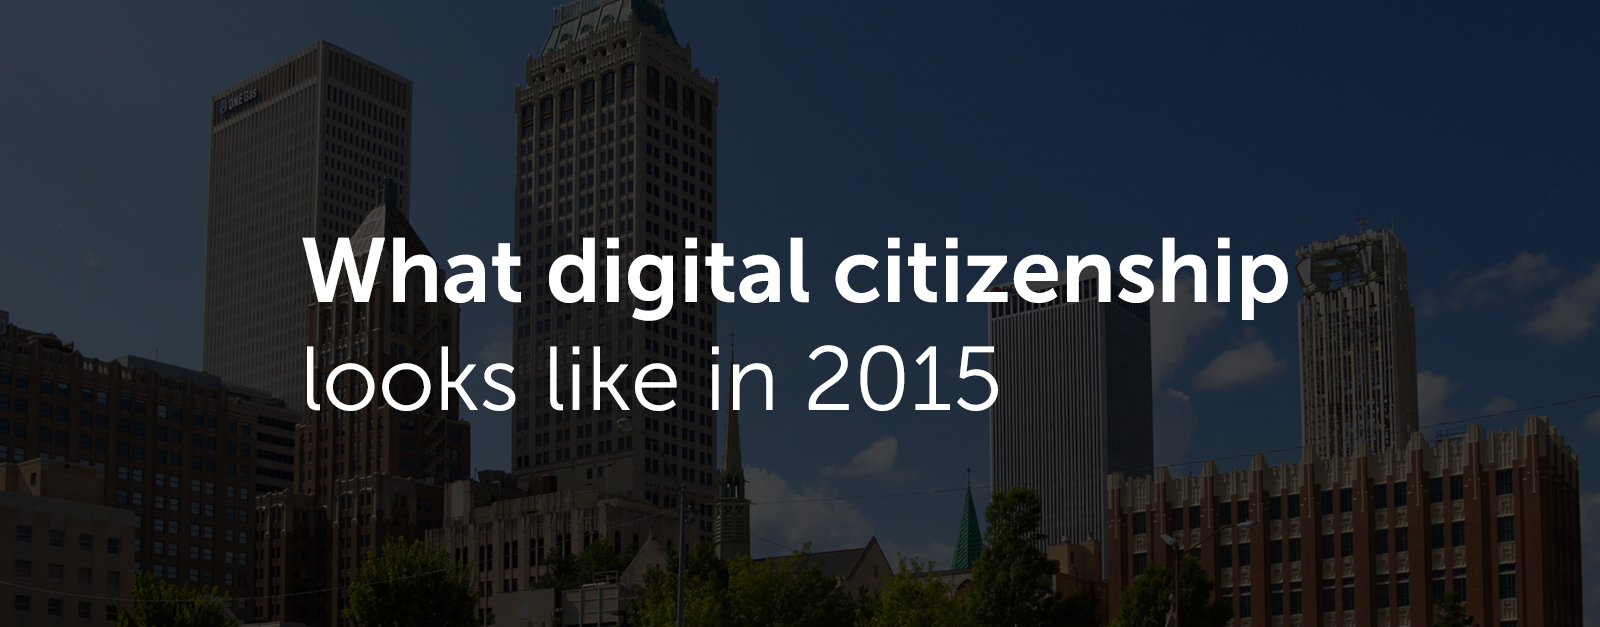 digital-citizenship-2015.jpg